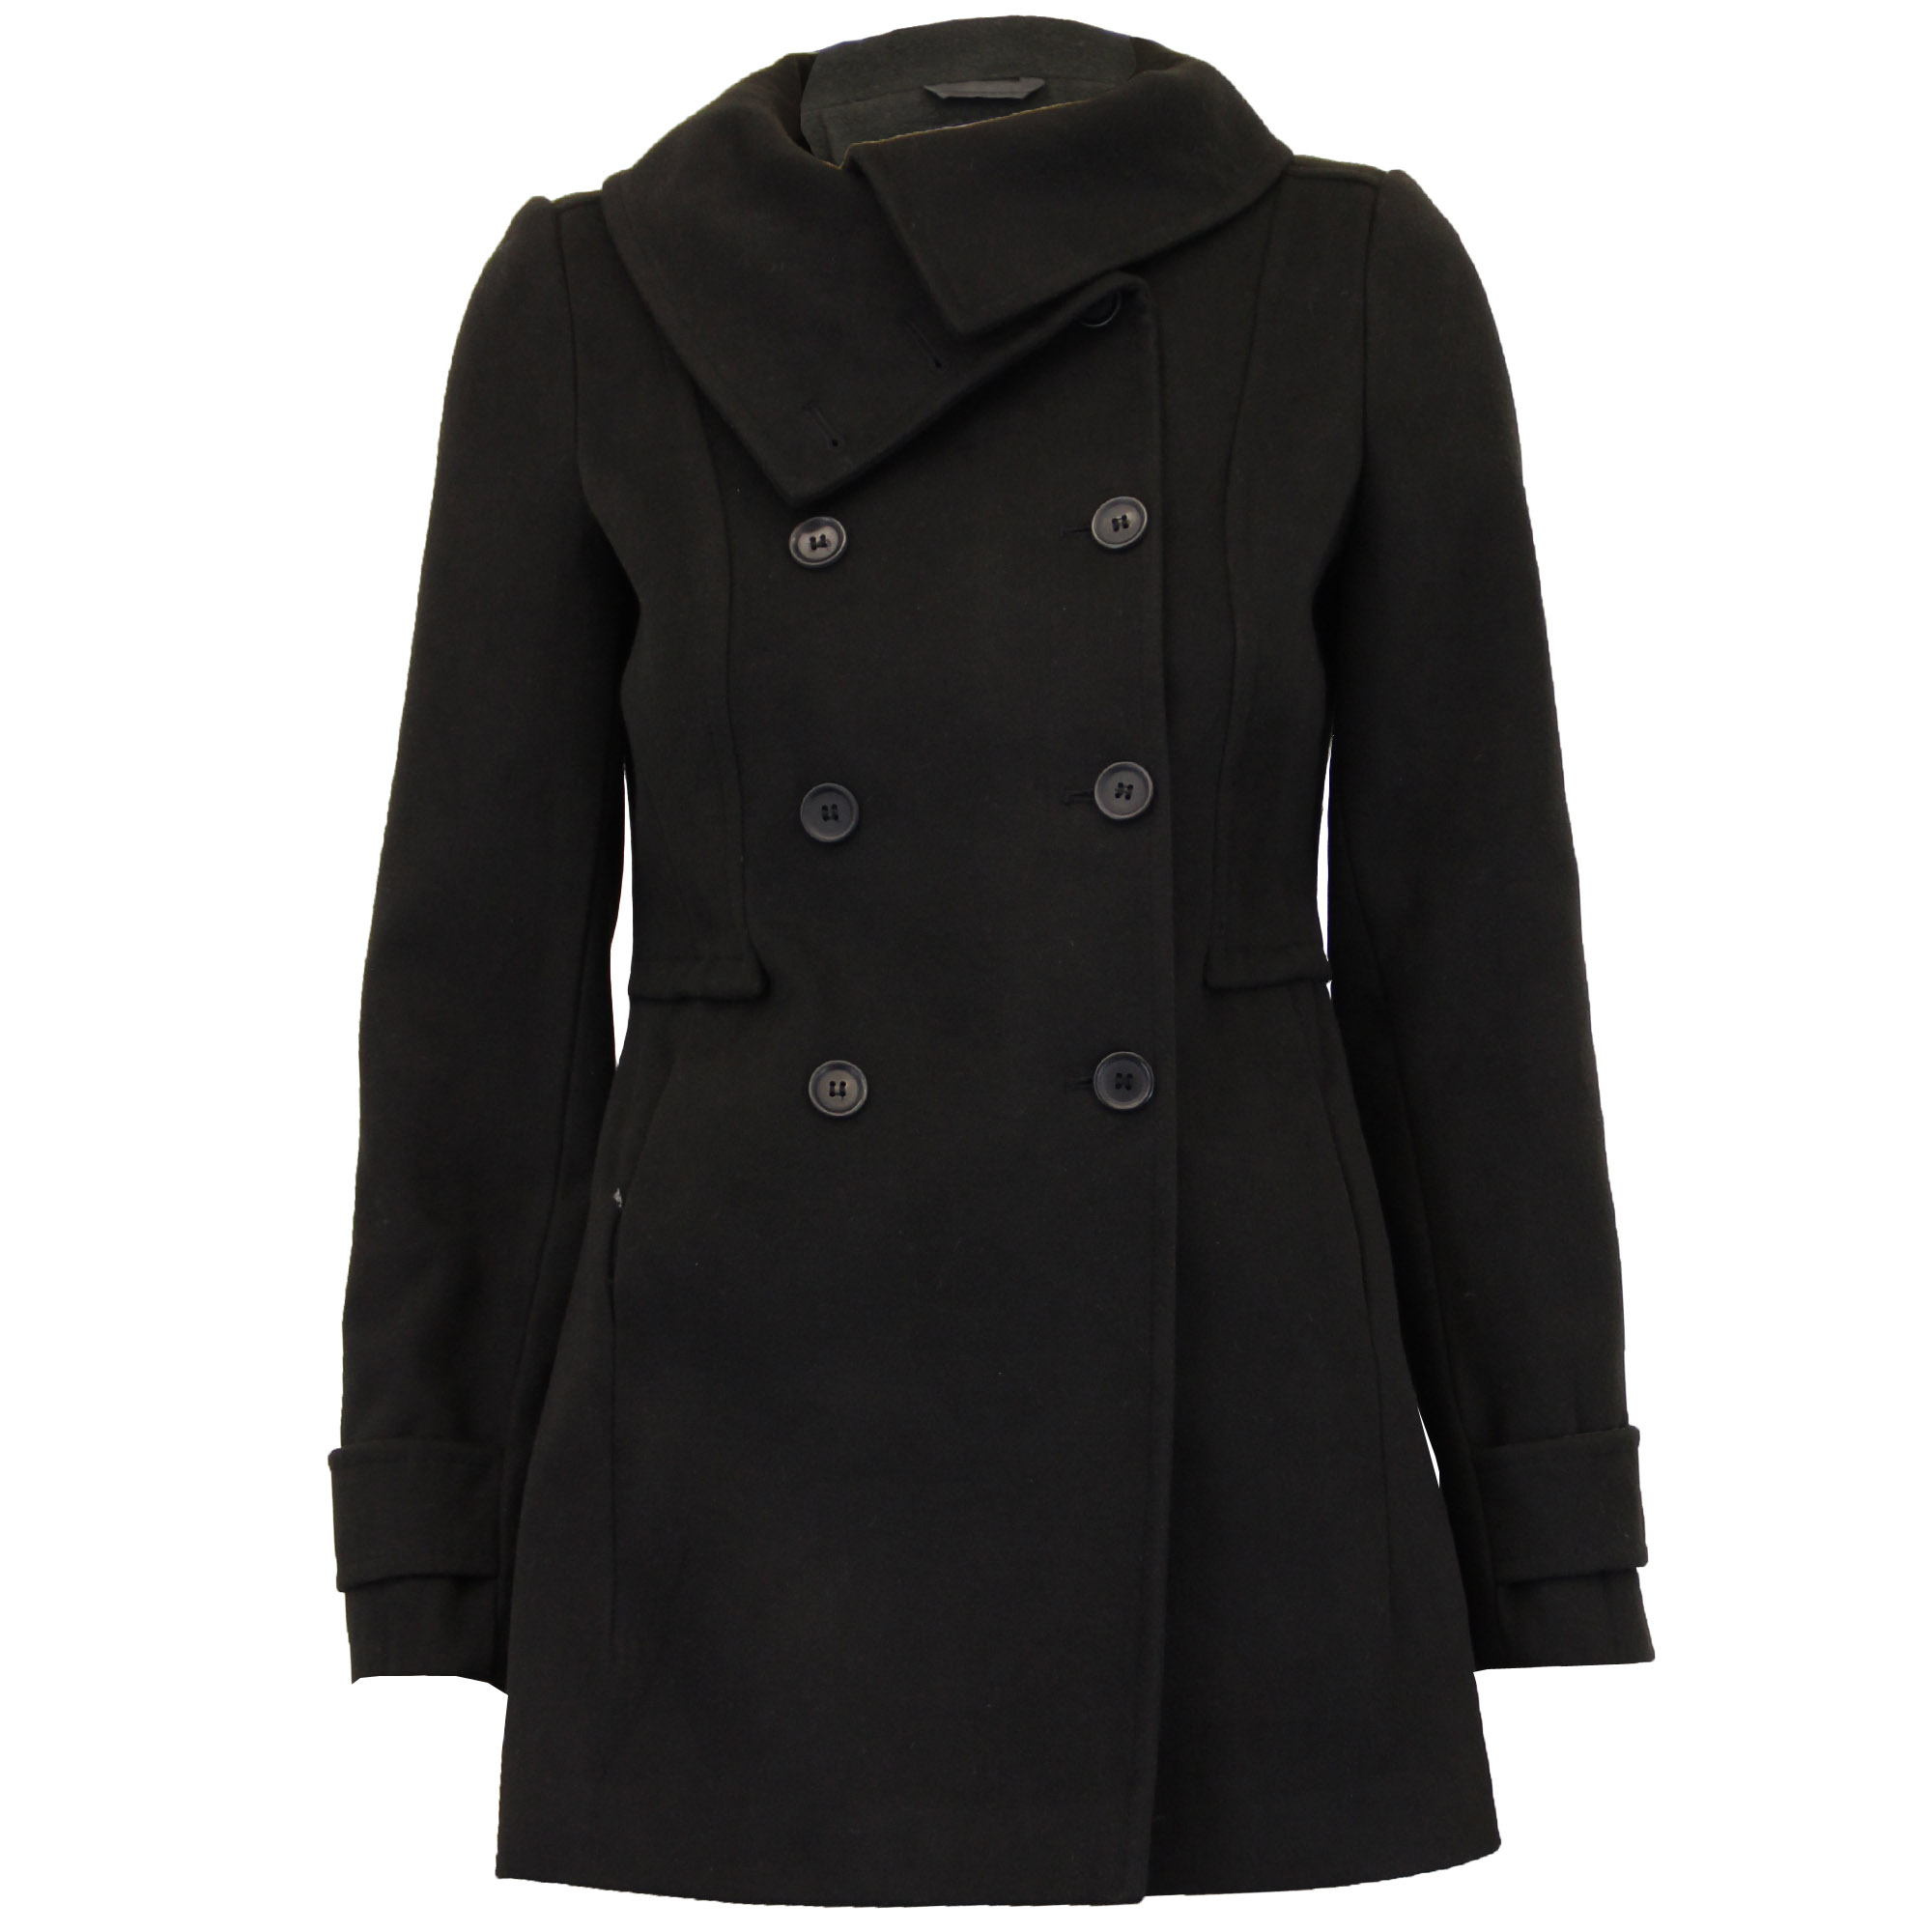 Find great deals on eBay for double breasted wool coat. Shop with confidence.